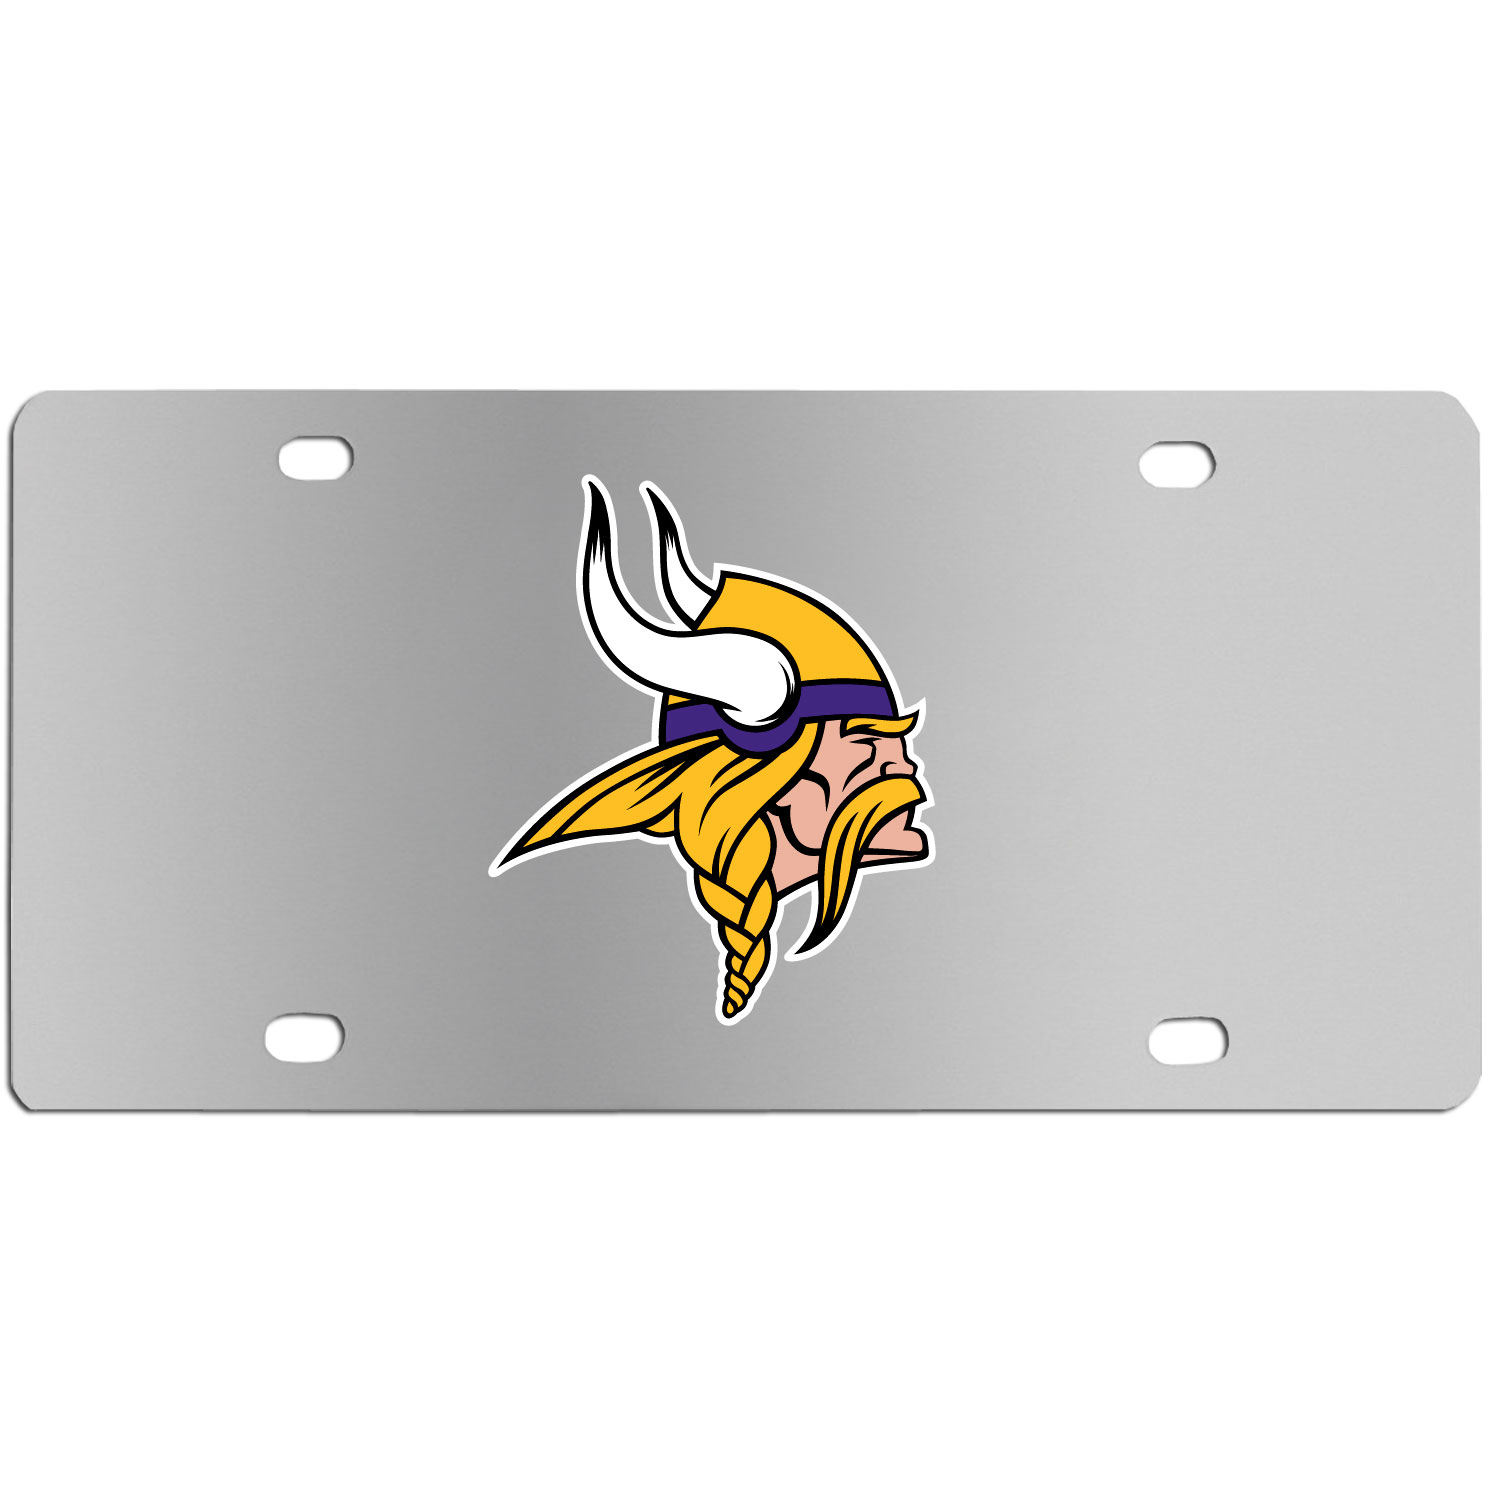 Minnesota Vikings Steel License Plate Wall Plaque - This high-quality stainless steel license plate features a detailed team logo on a the polished surface. The attractive plate is perfect for wall mounting in your home or office to become the perfect die-hard Minnesota Vikings fan decor.